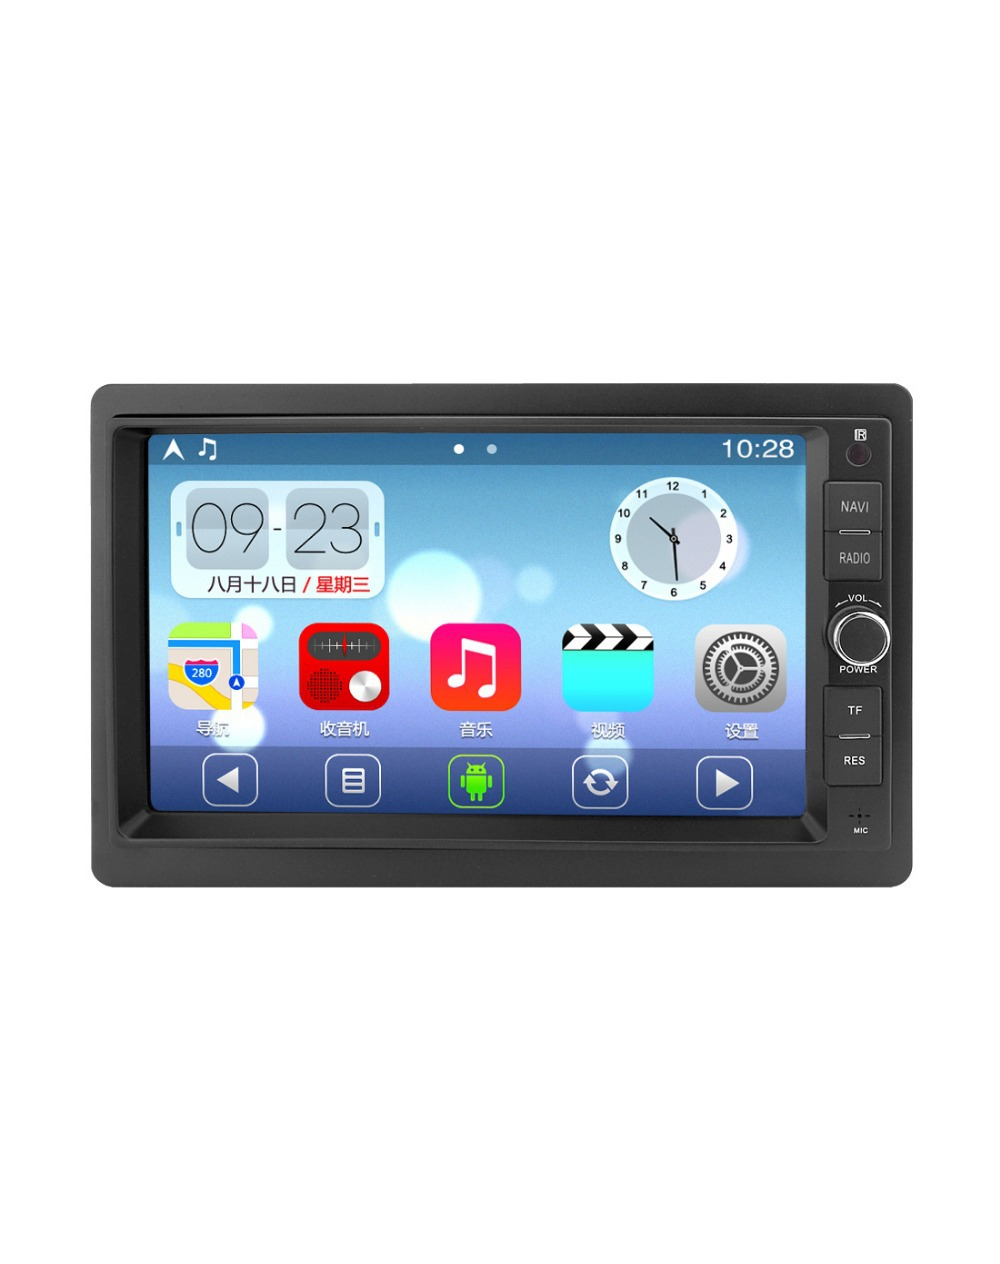 Newsmy Android 4.2 7 inch Capacitive touch screen quad core A9 CPU 2G RAM 7inch Universal machine CarPad DT2001S-H-H - HUNAN NEWSMY NAVIGATION TECHNOLOGY CO.,LTD store